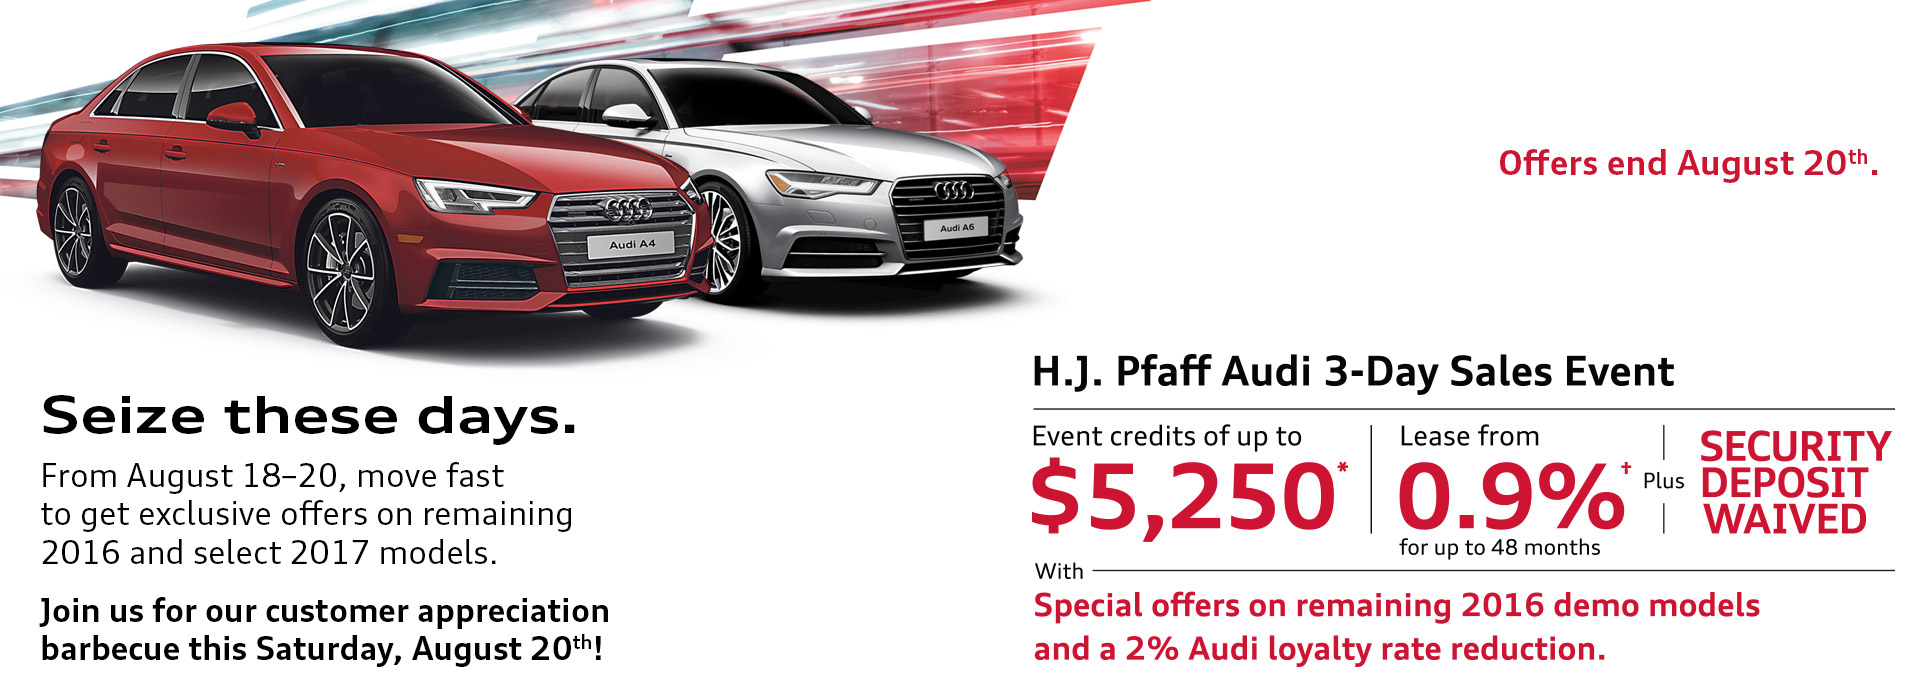 HJ Pfaff Audi Day Sales Event HJ Pfaff Audi - Audi loyalty